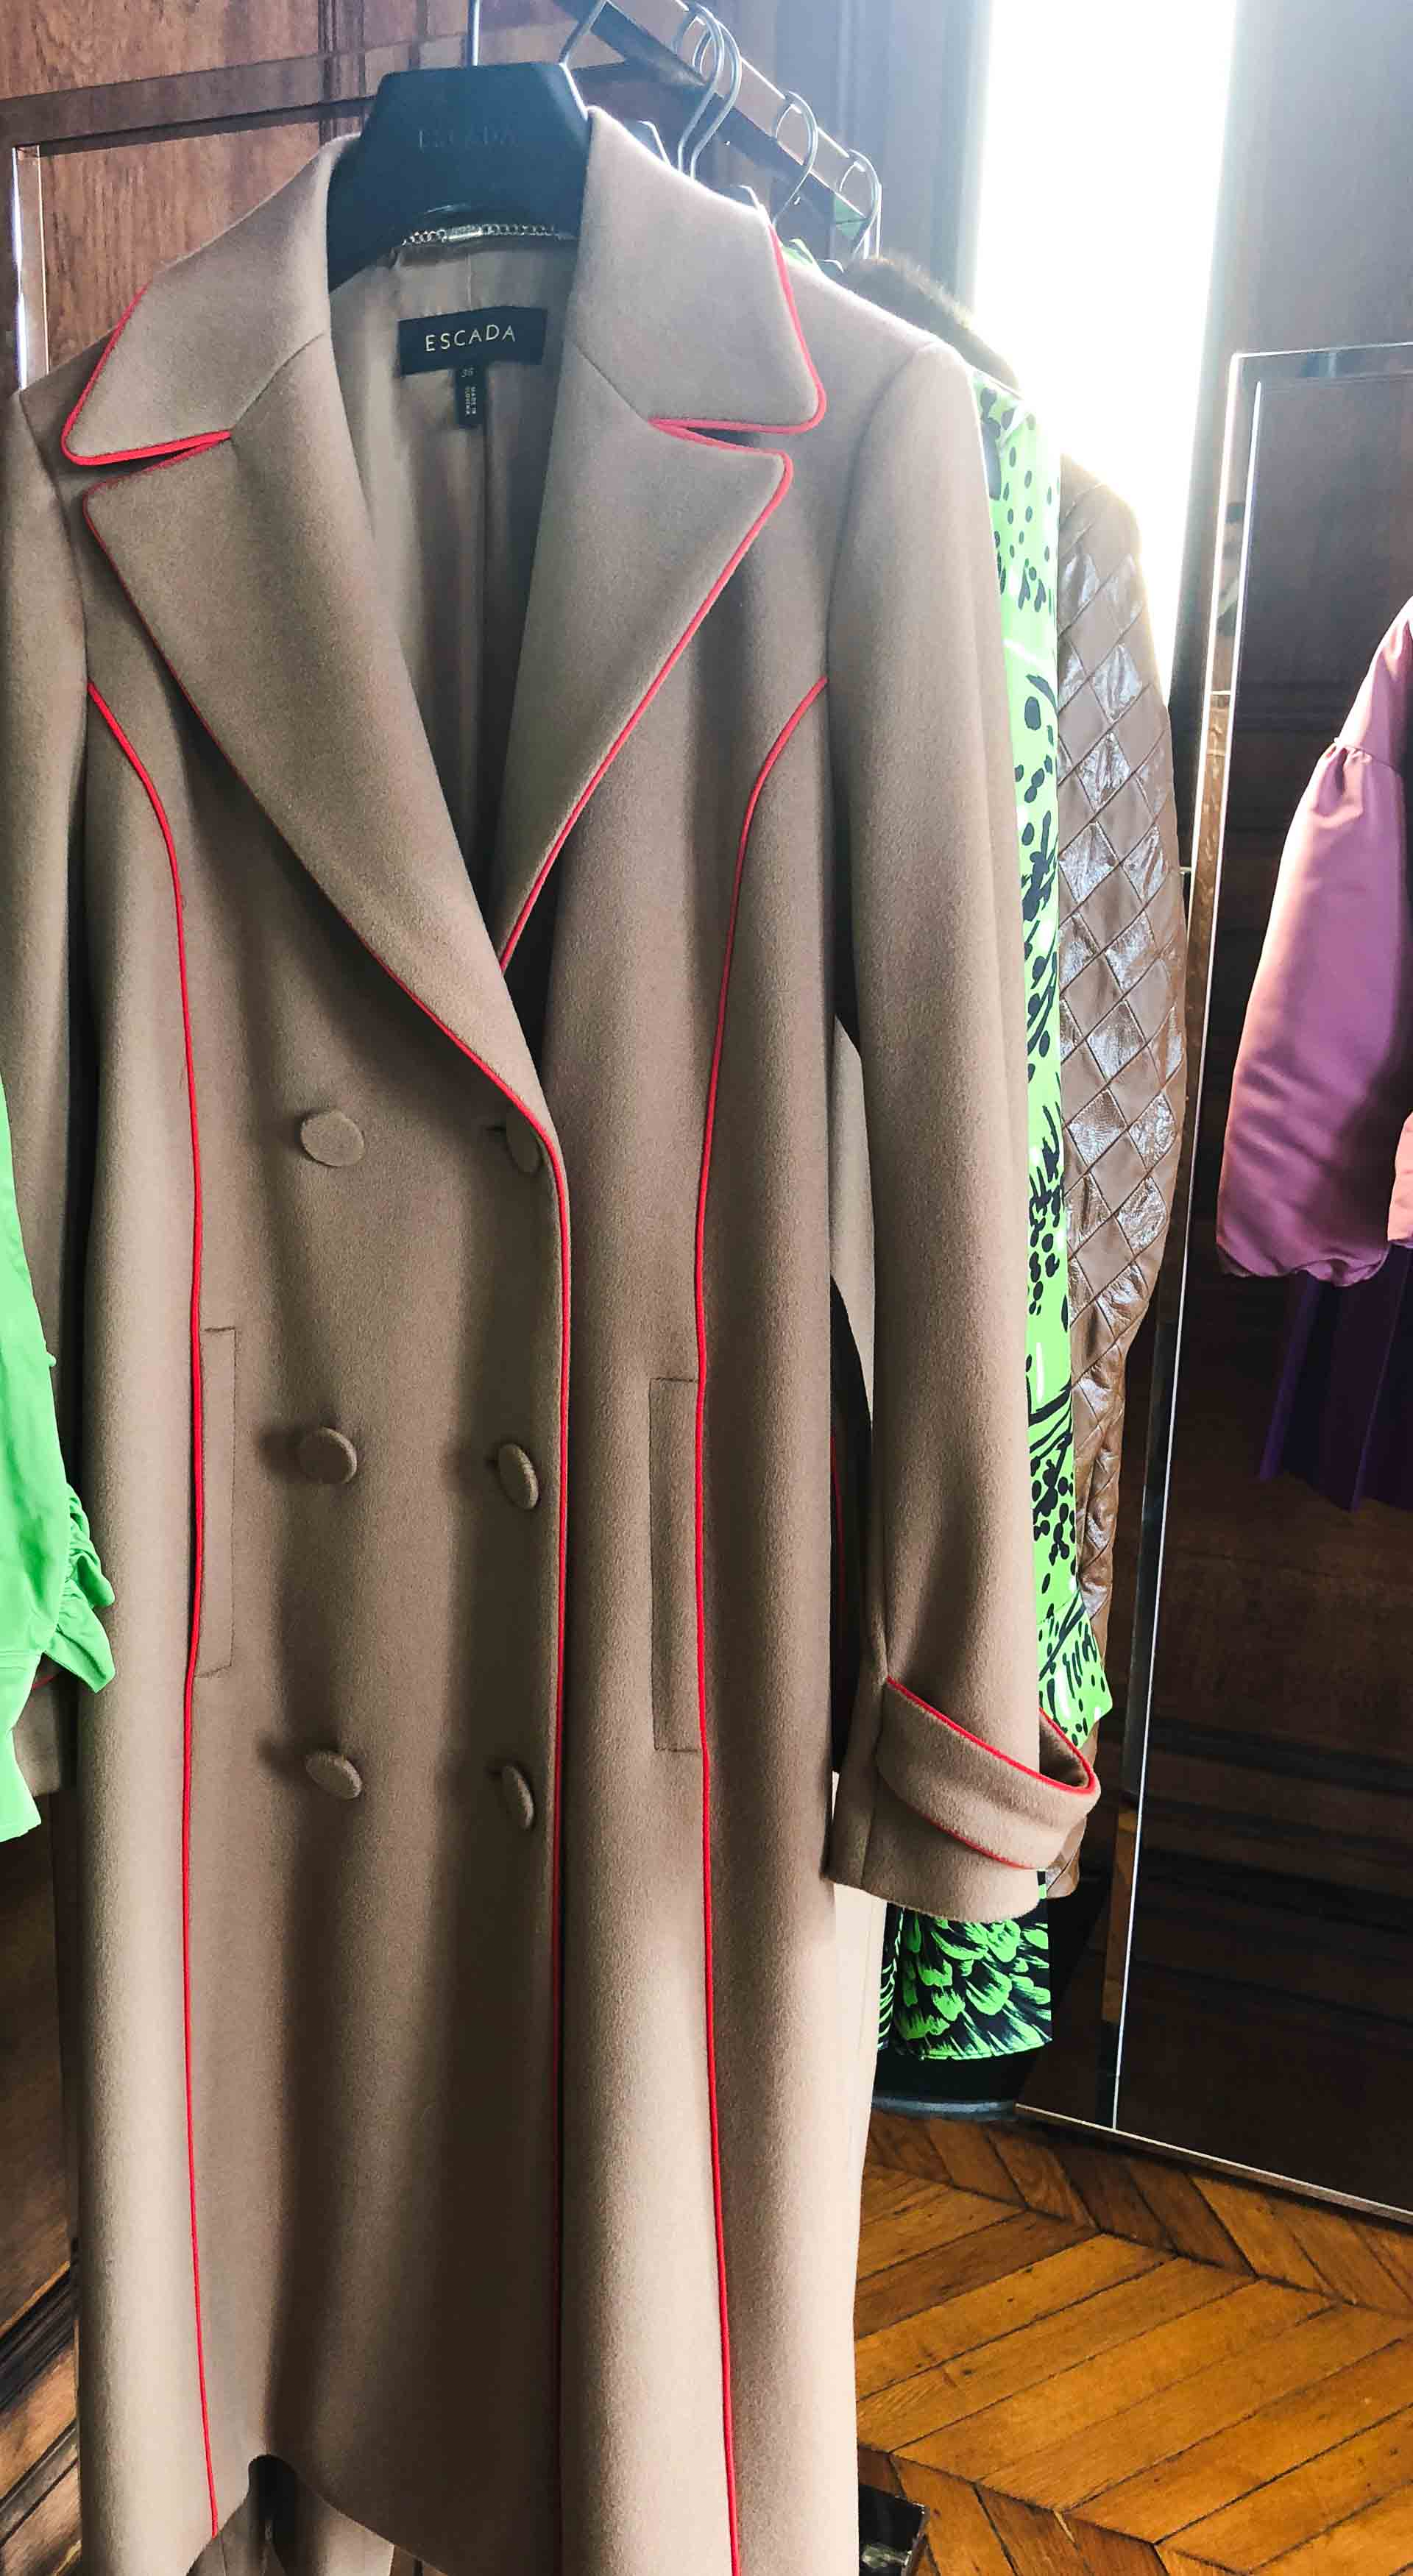 Brunette from Wall Street Escada camel double breasted coat